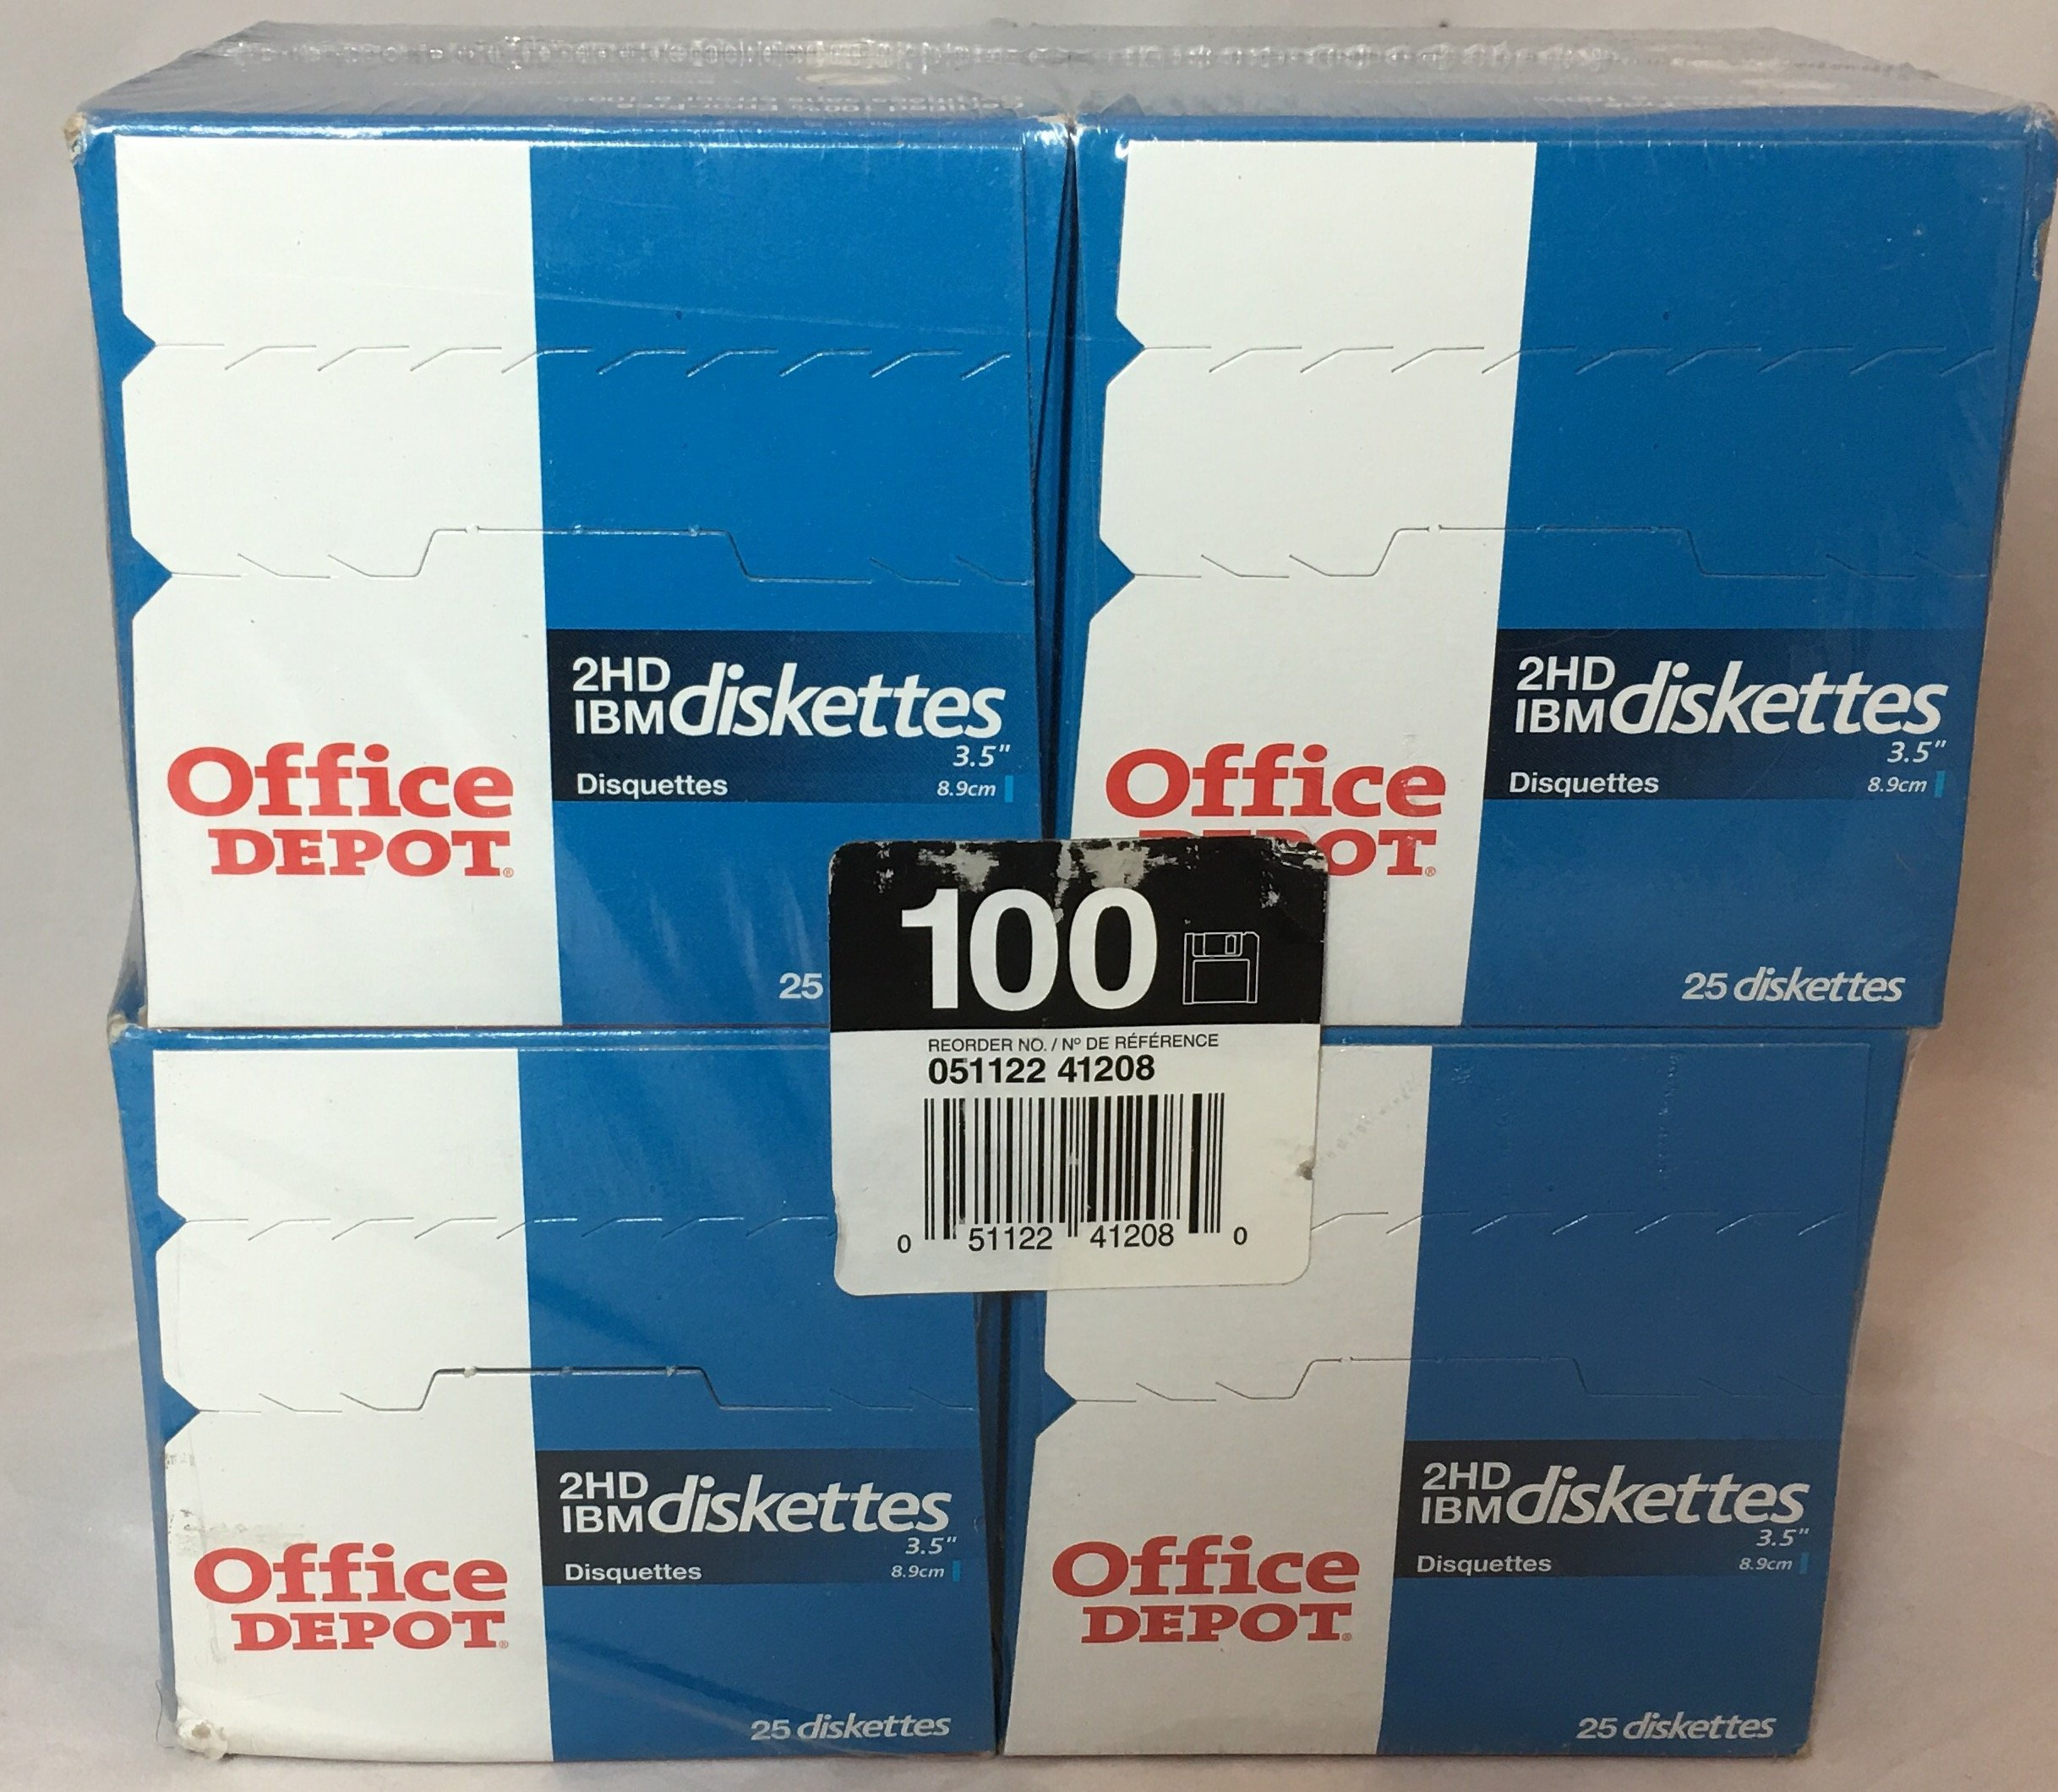 Office Depot Brand 3 1/2'' Bulk Diskettes, IBM Format, 2HD, Black, Box Of 100 by Office Depot (Image #2)